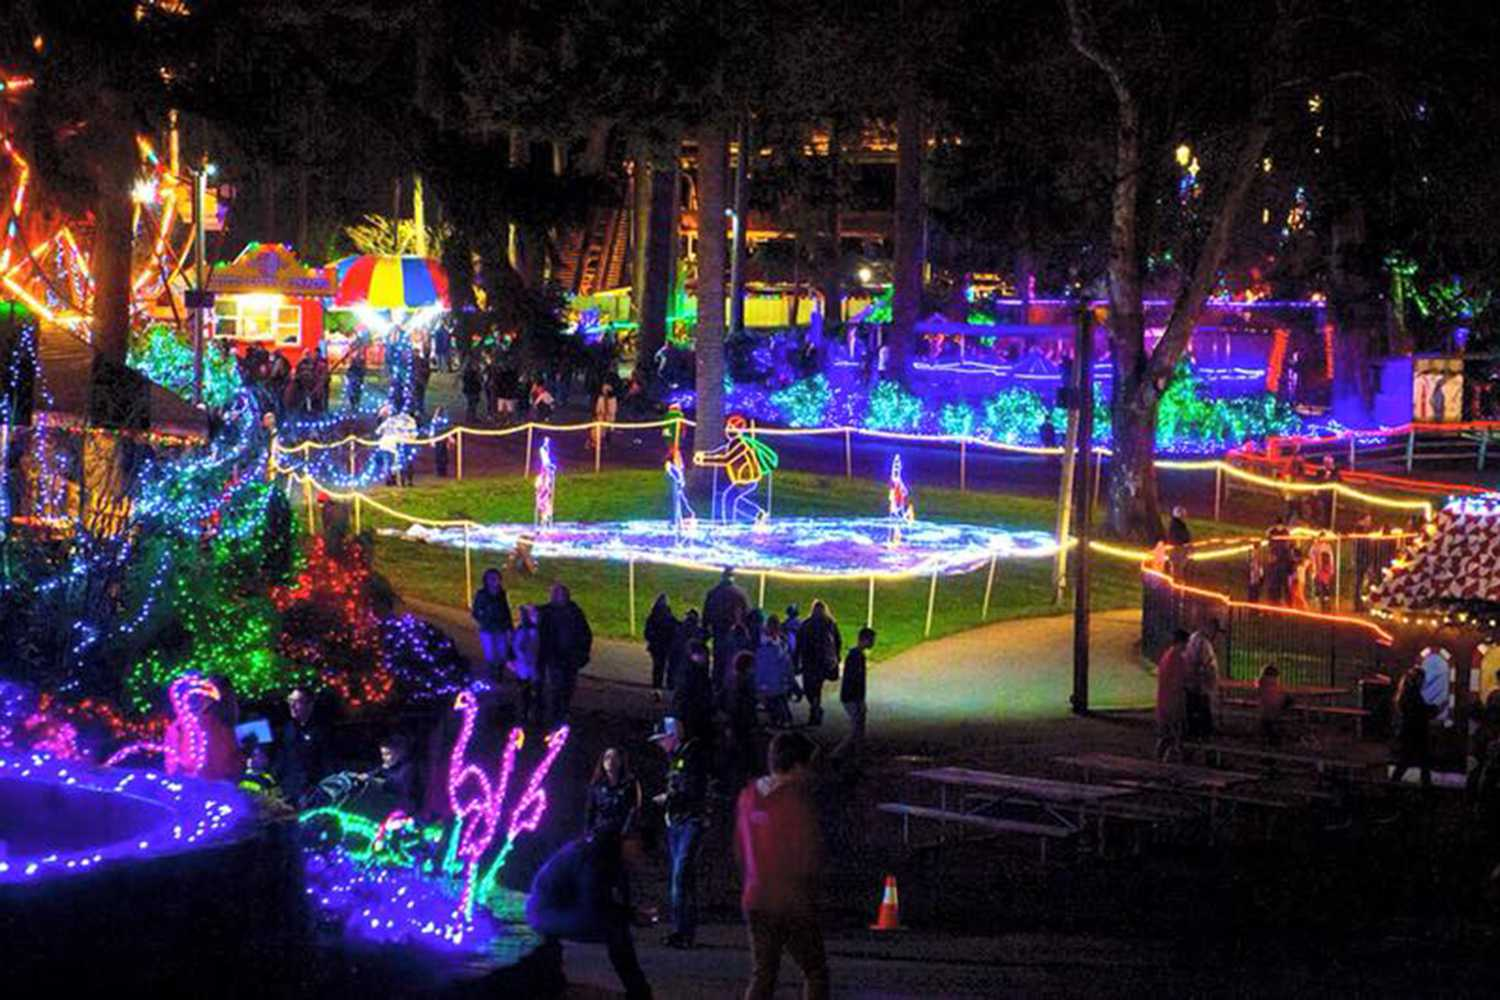 Wild Waves Christmas Lights 2019 Best Christmas Lights in Seattle, Tacoma, and Bellevue